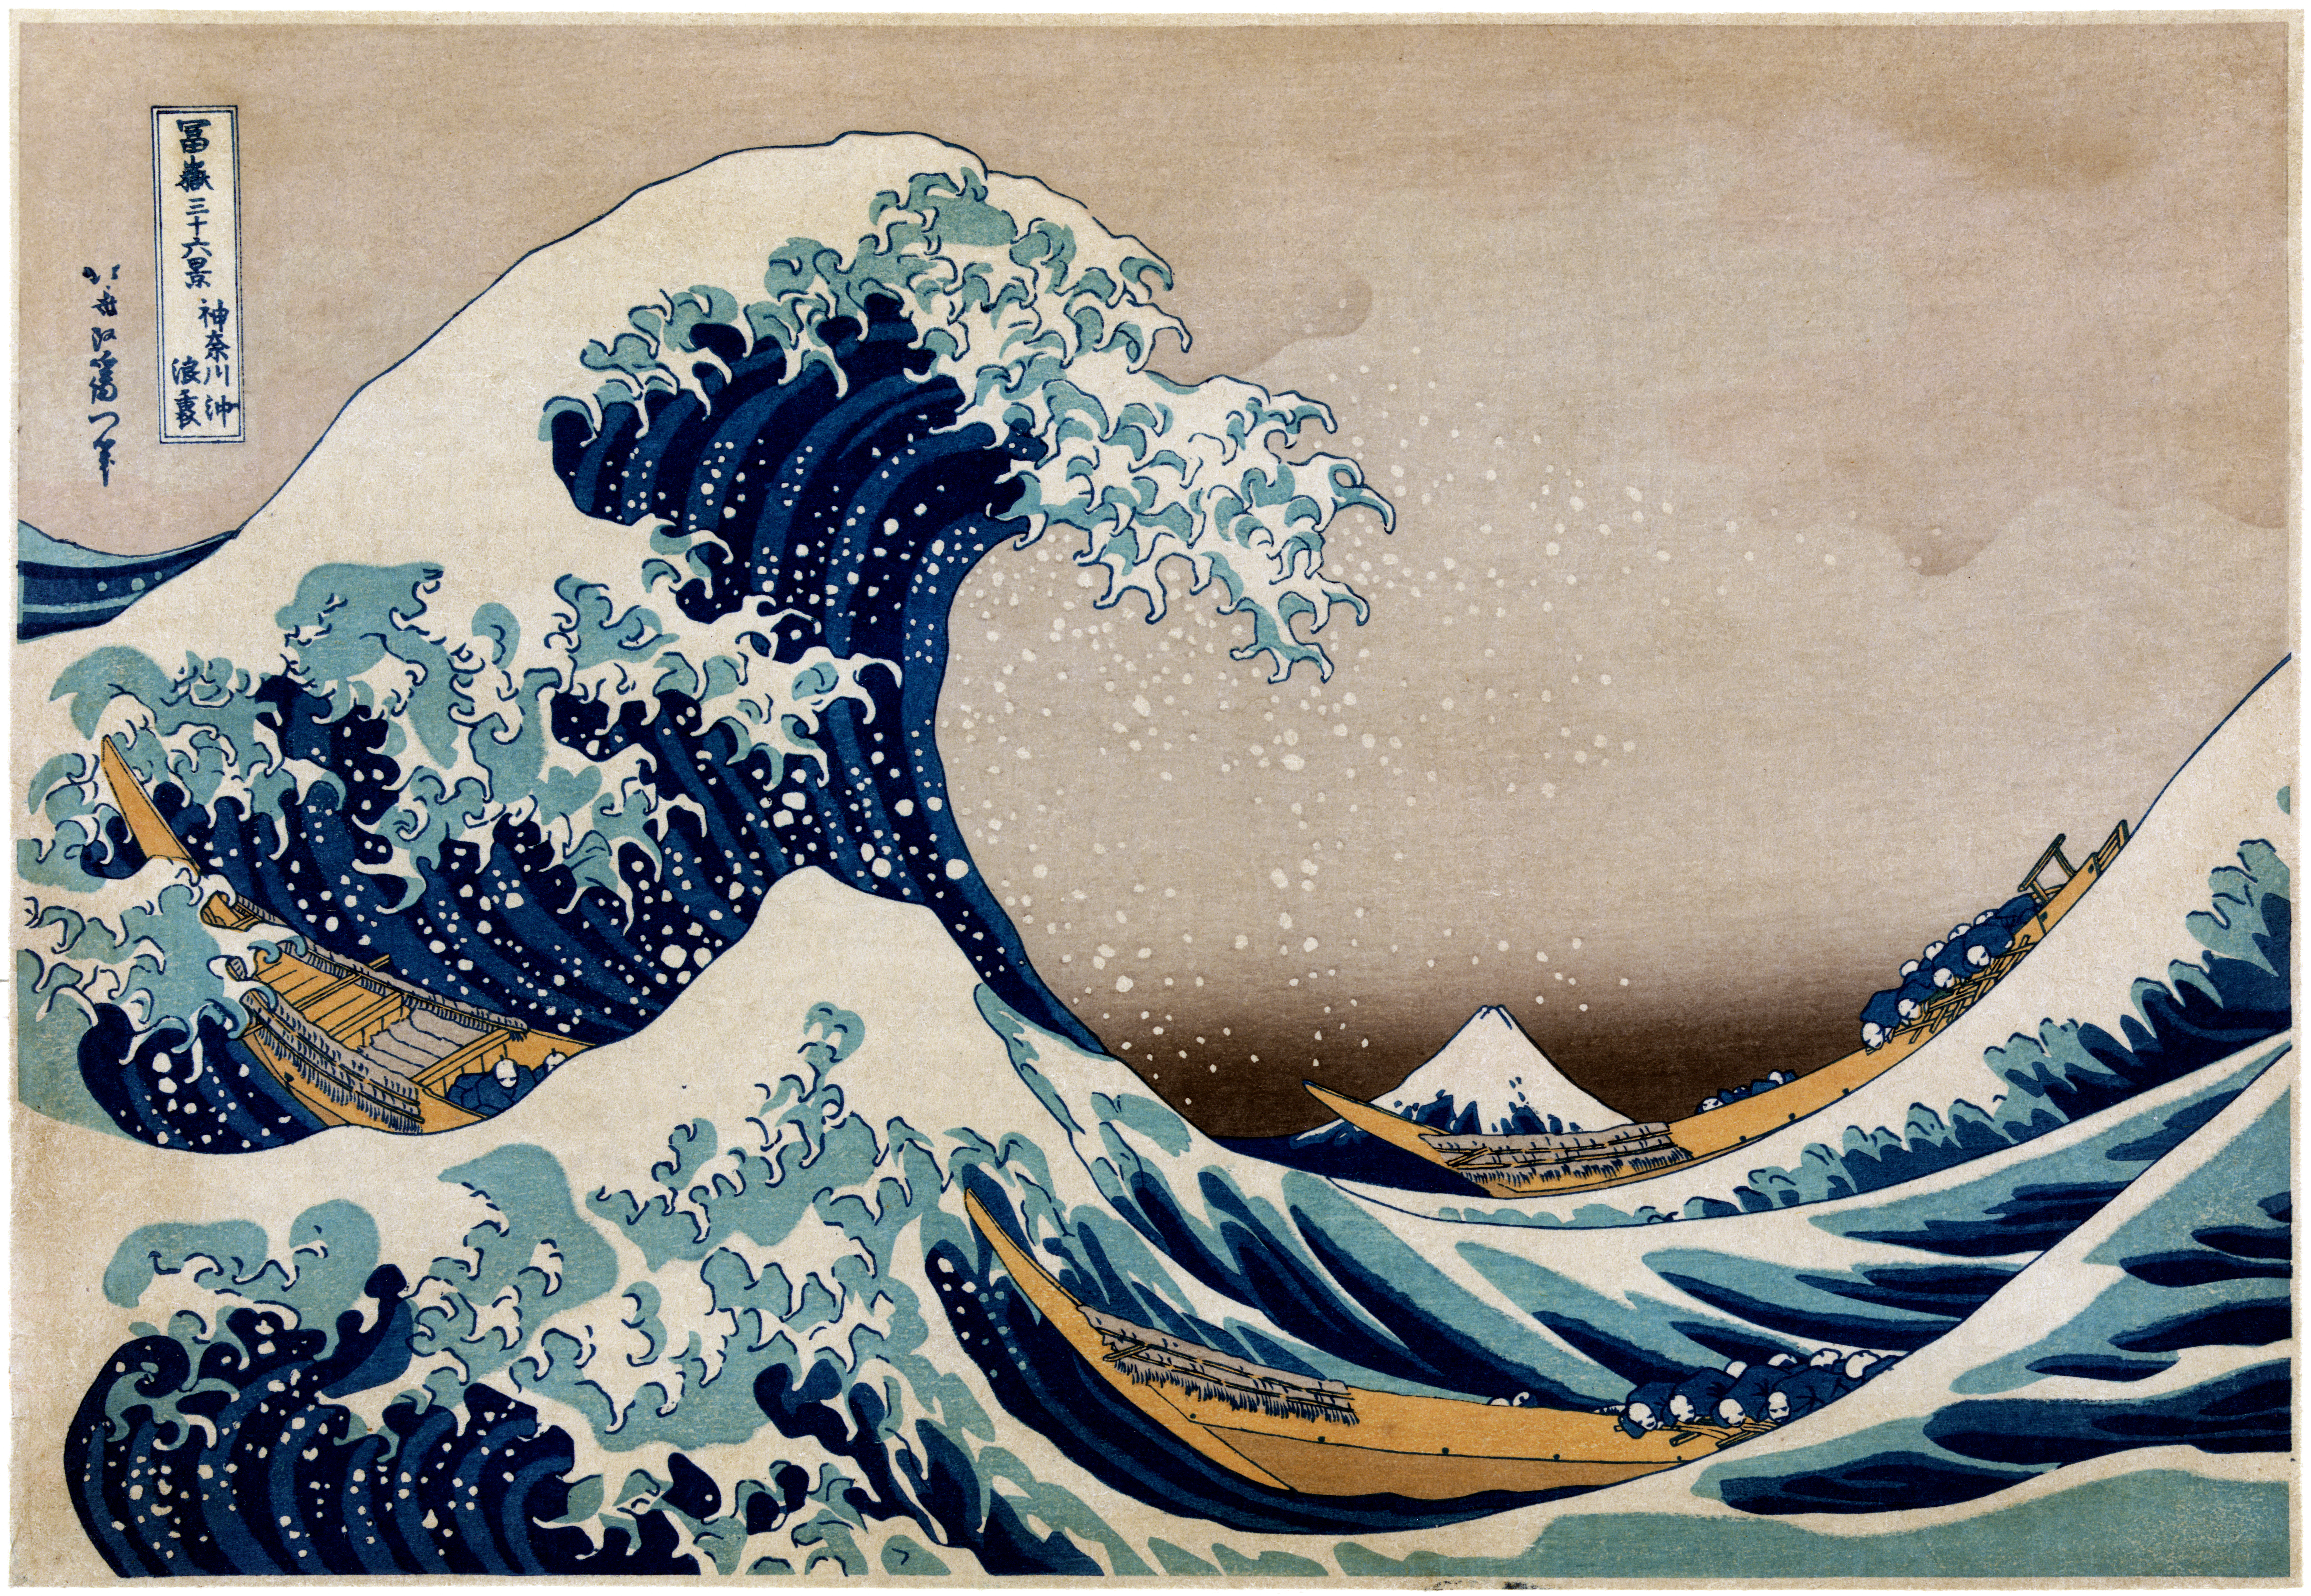 external image Flickr_-_%E2%80%A6trialsanderrors_-_Hokusai%2C_Under_the_great_wave_off_Kanagawa%2C_ca._1832.jpg